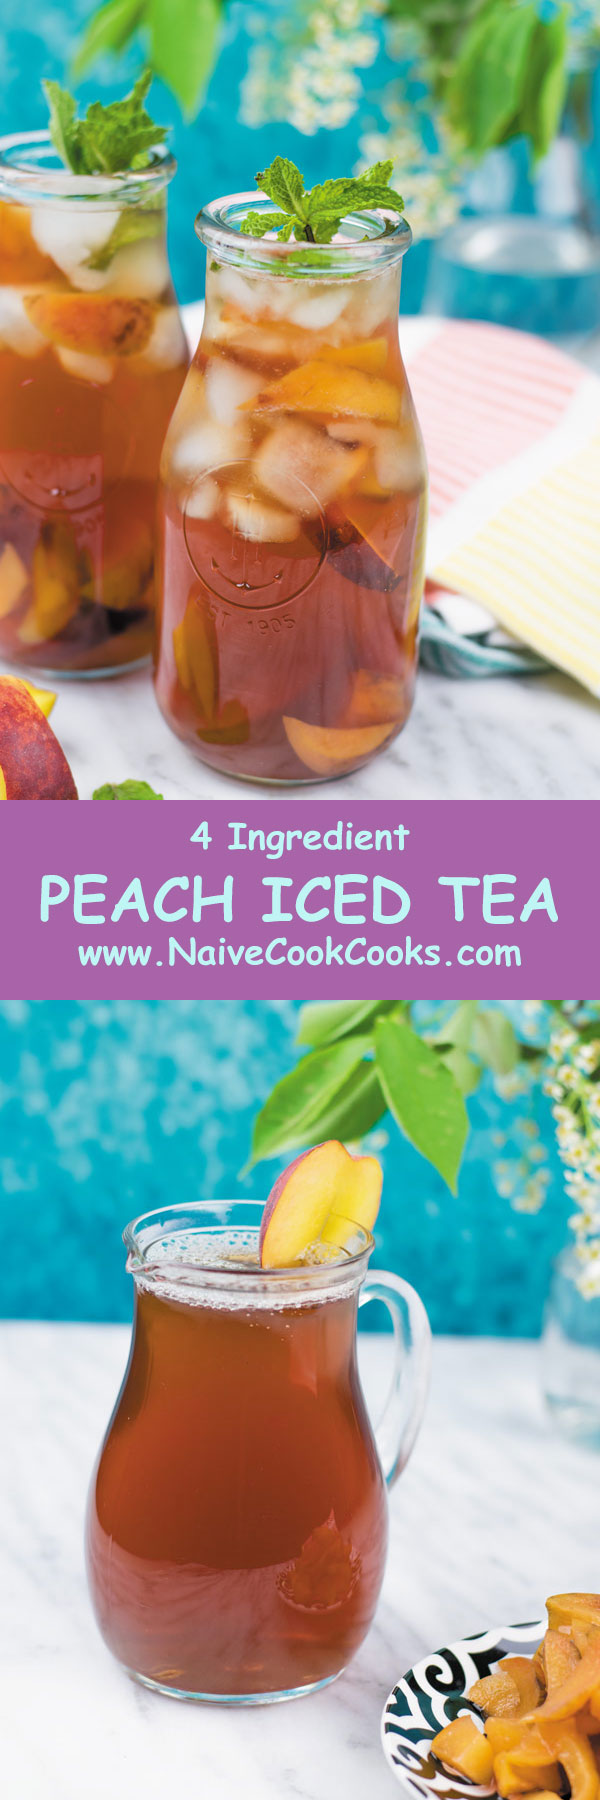 peach iced tea ready to drink